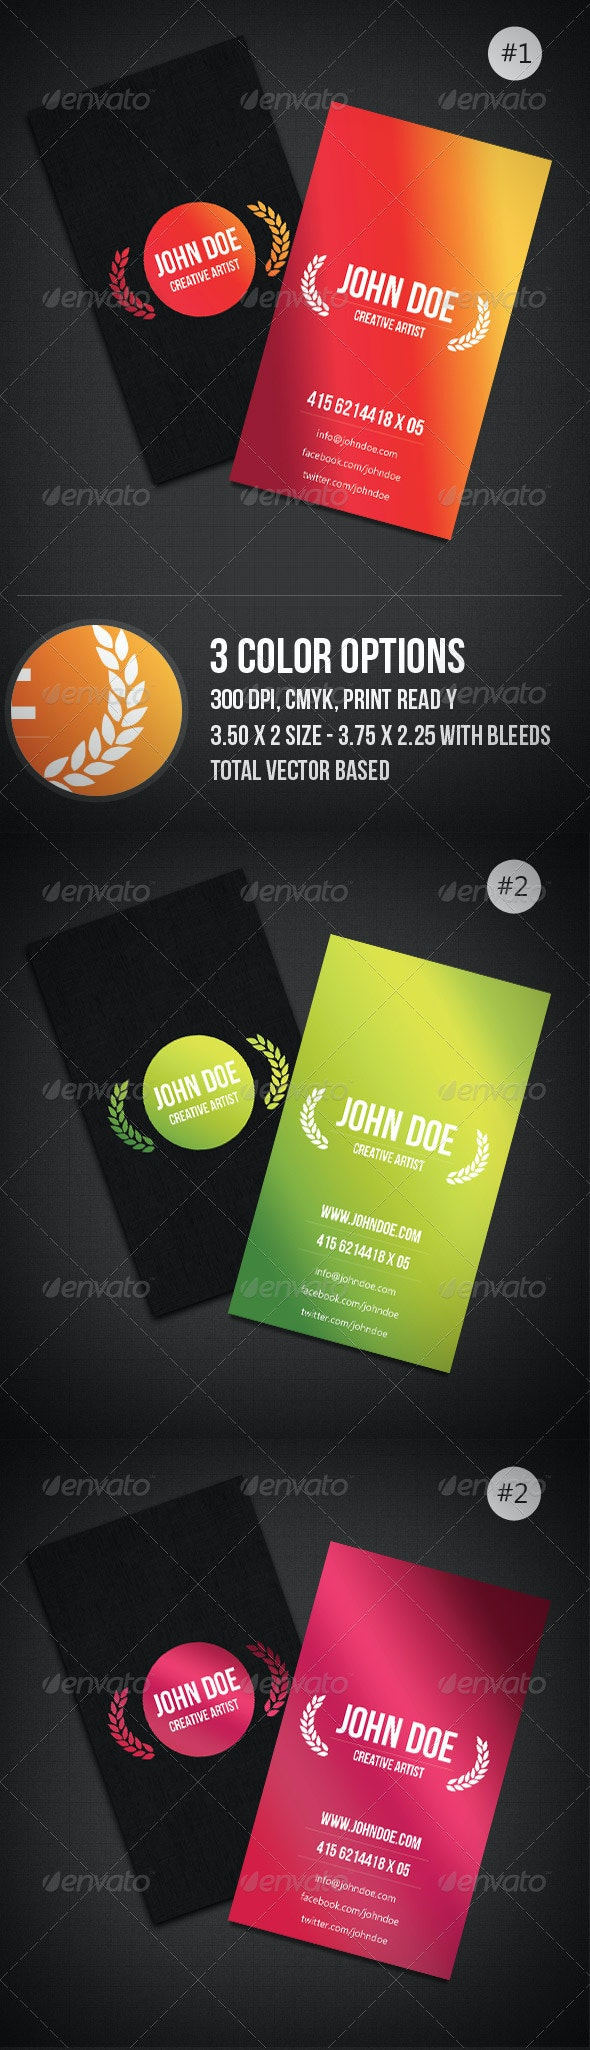 Clean & Minimal Business Card - Creative Business Cards